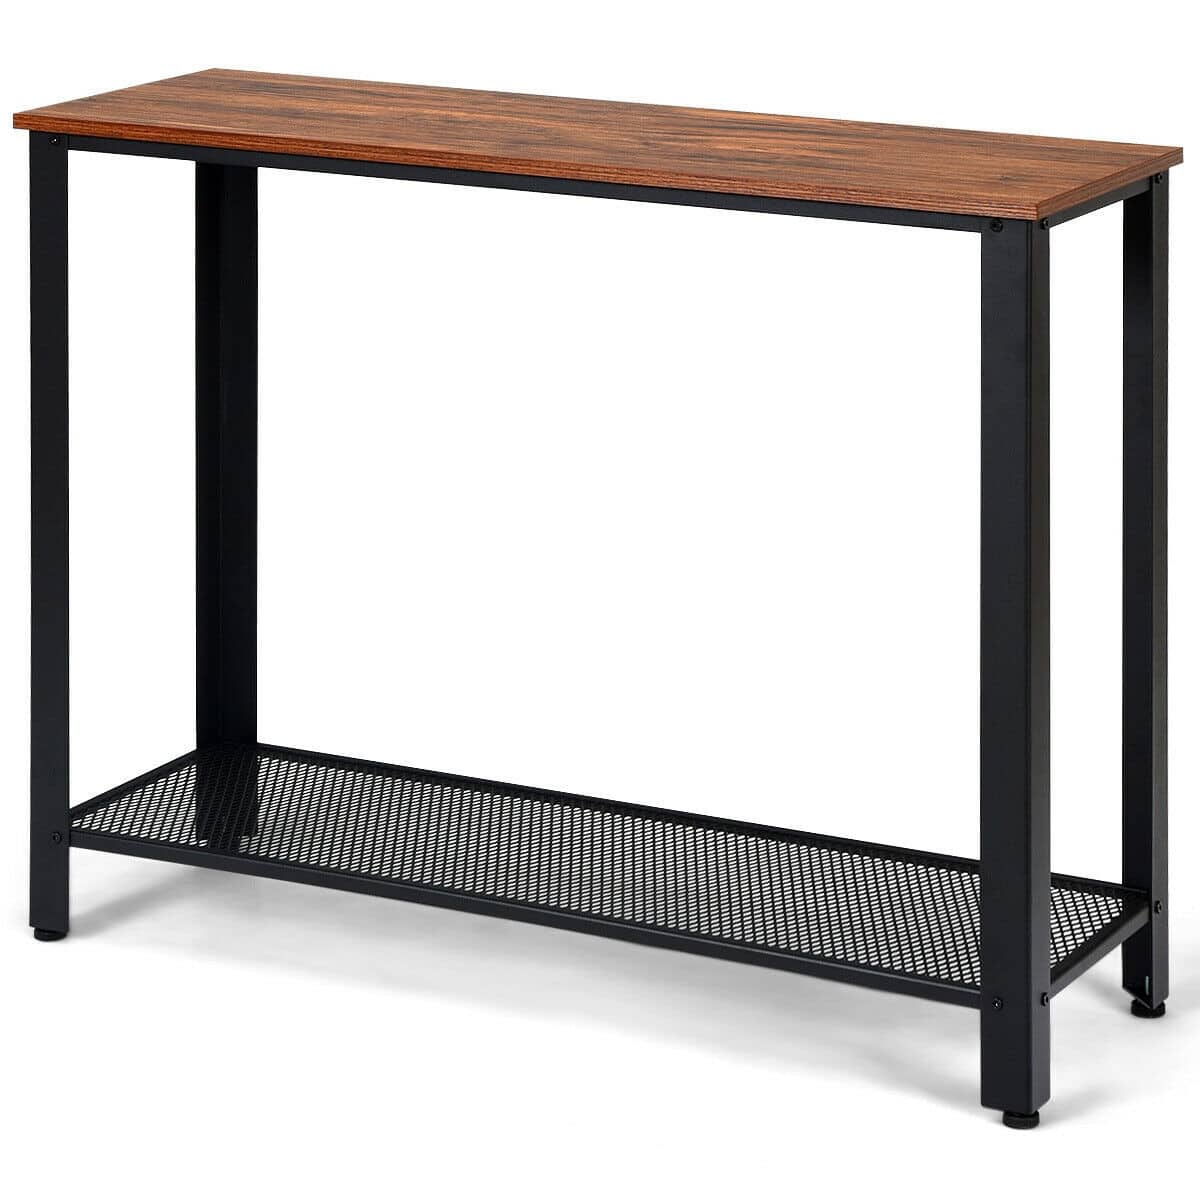 Metal Frame Wood Console Sofa Table with Storage Shelf - $50.00 + Free Shipping